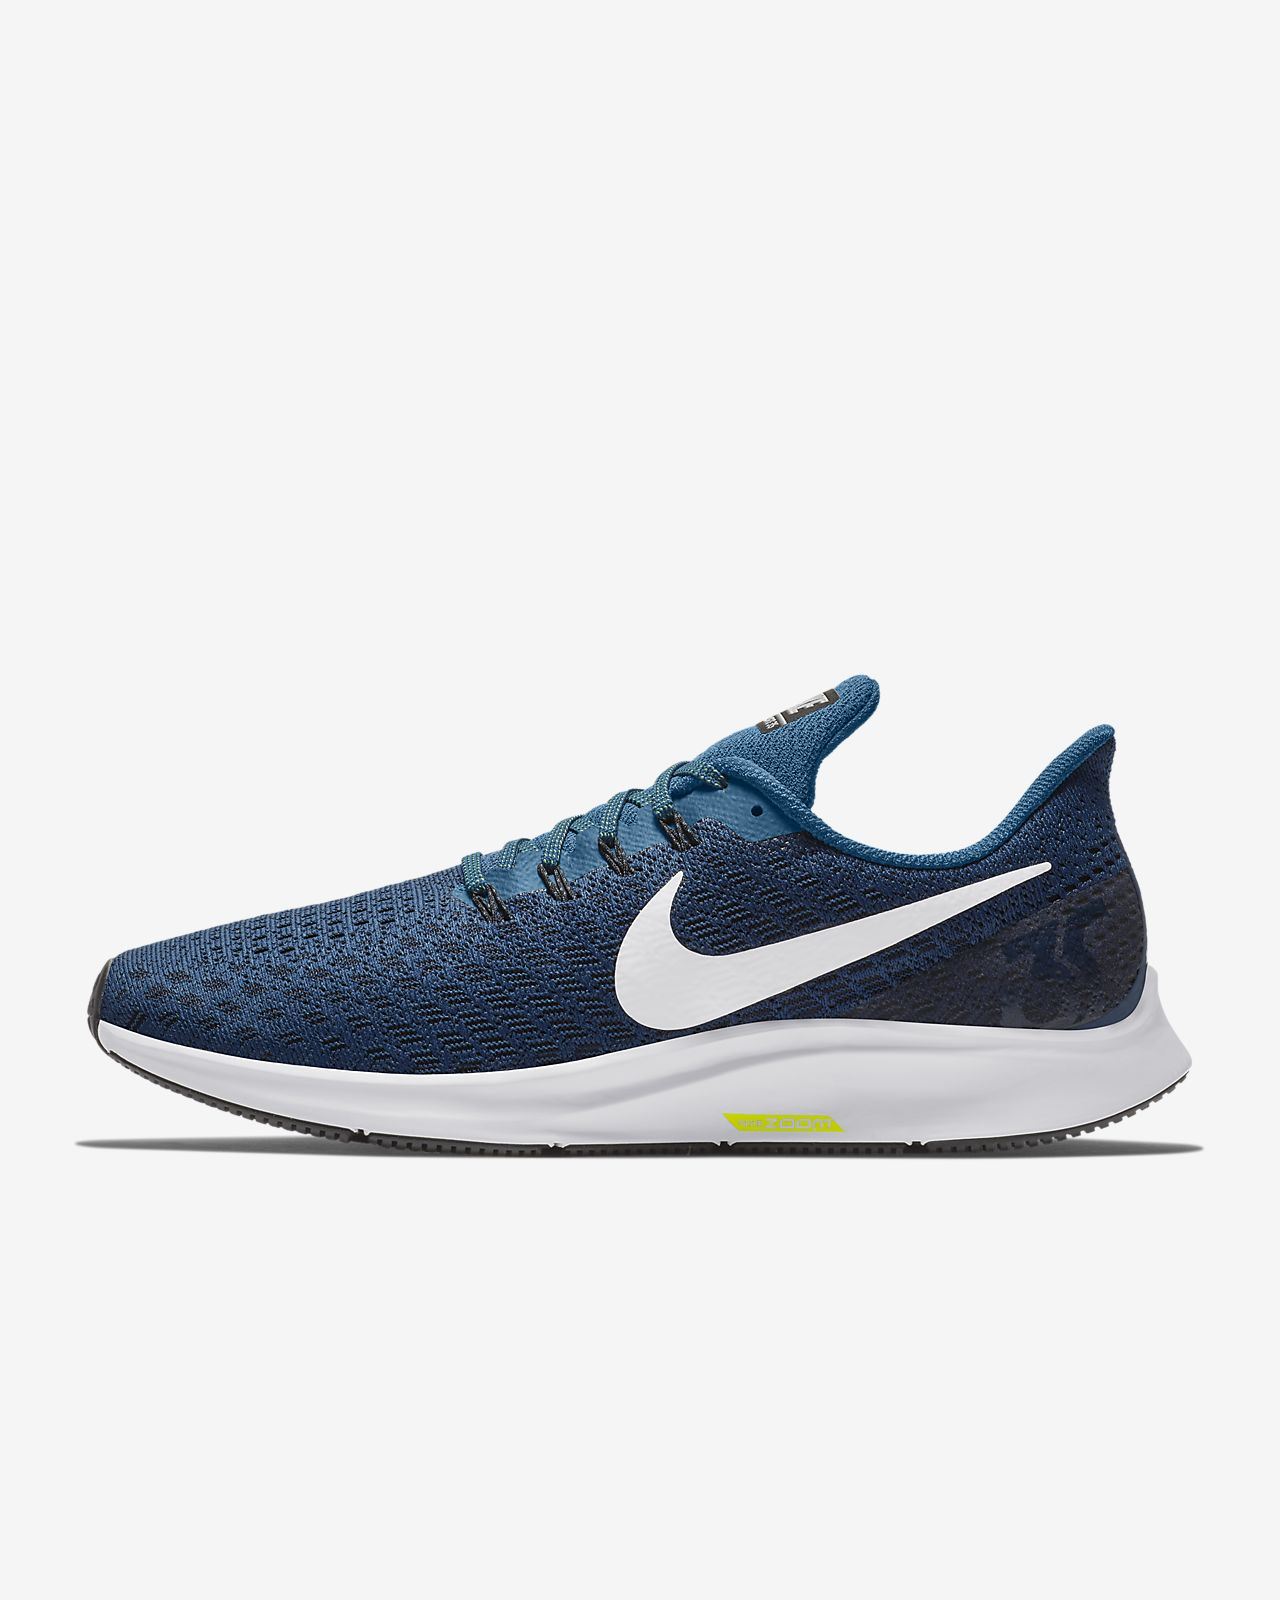 bc6bad8feb9 Calzado de running para hombre Nike Air Zoom Pegasus 35. Nike.com MX